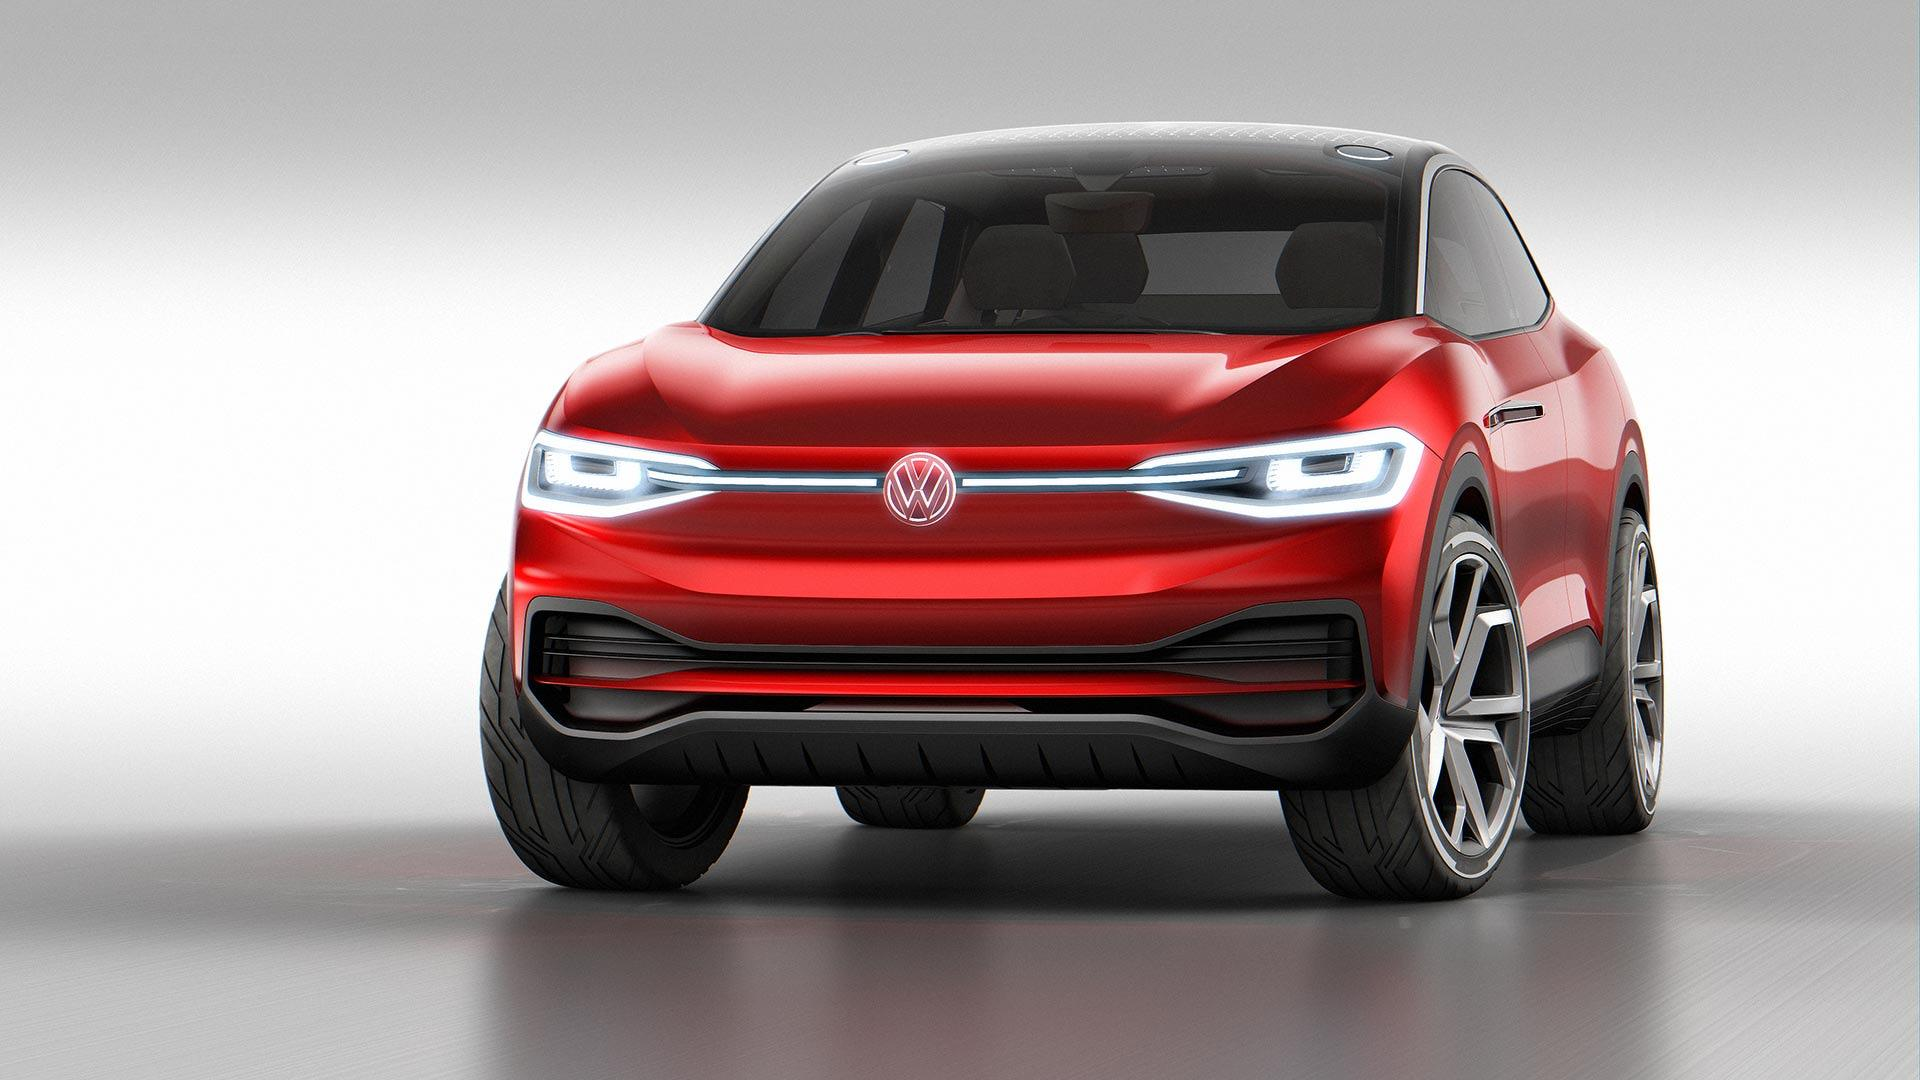 Electric Vw Forum Just Another Wiring Diagram Blog Vwvortexcom Trailer Plans For Diy Vwvortex Com Updated Volkswagen I D Crozz Ii Concept Revealed In Rh Forums Owners Tdi